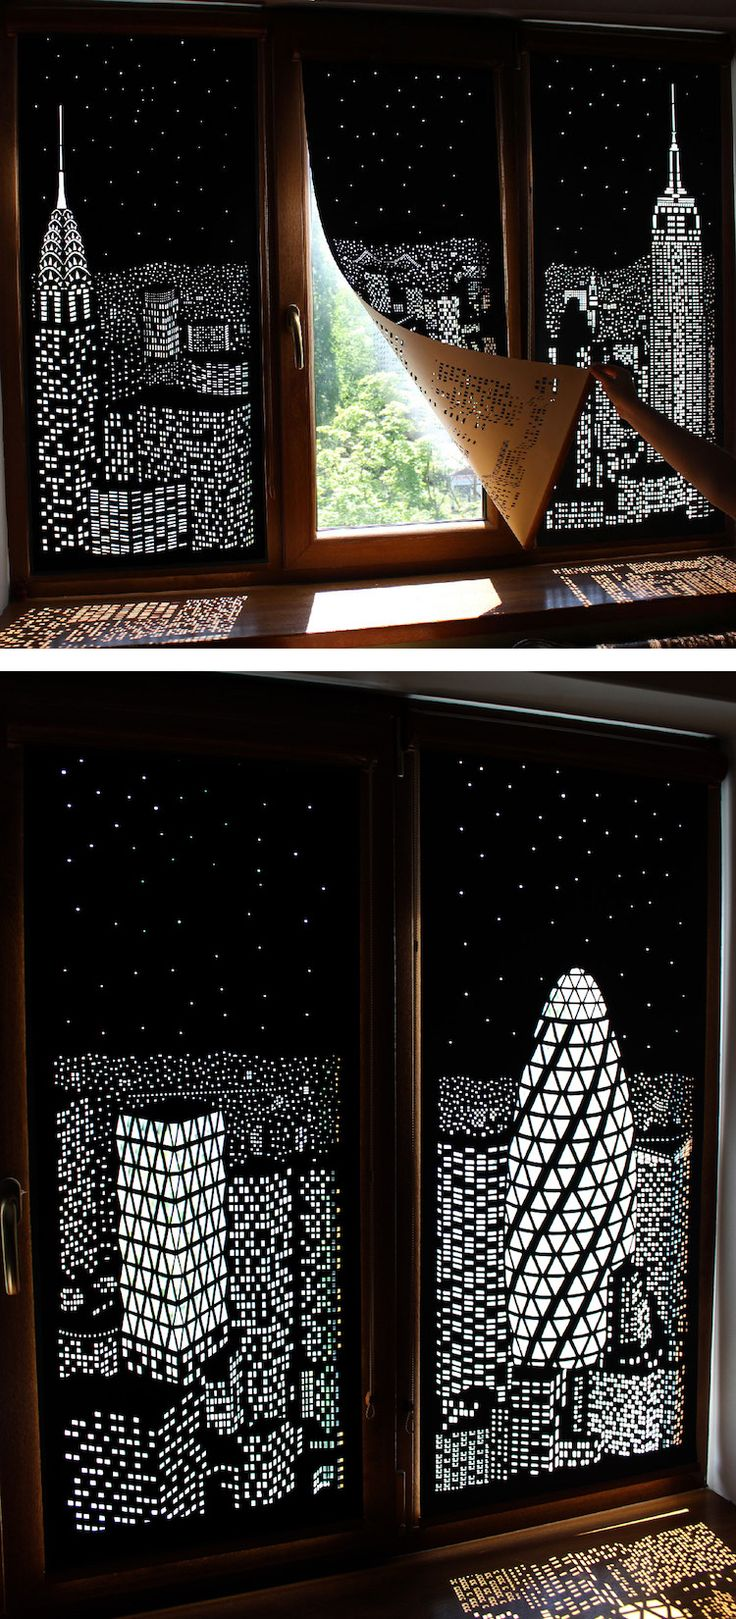 Ukrainian designers HoleRoll have created a unique window blinds that double as spectacular works of shadow art.